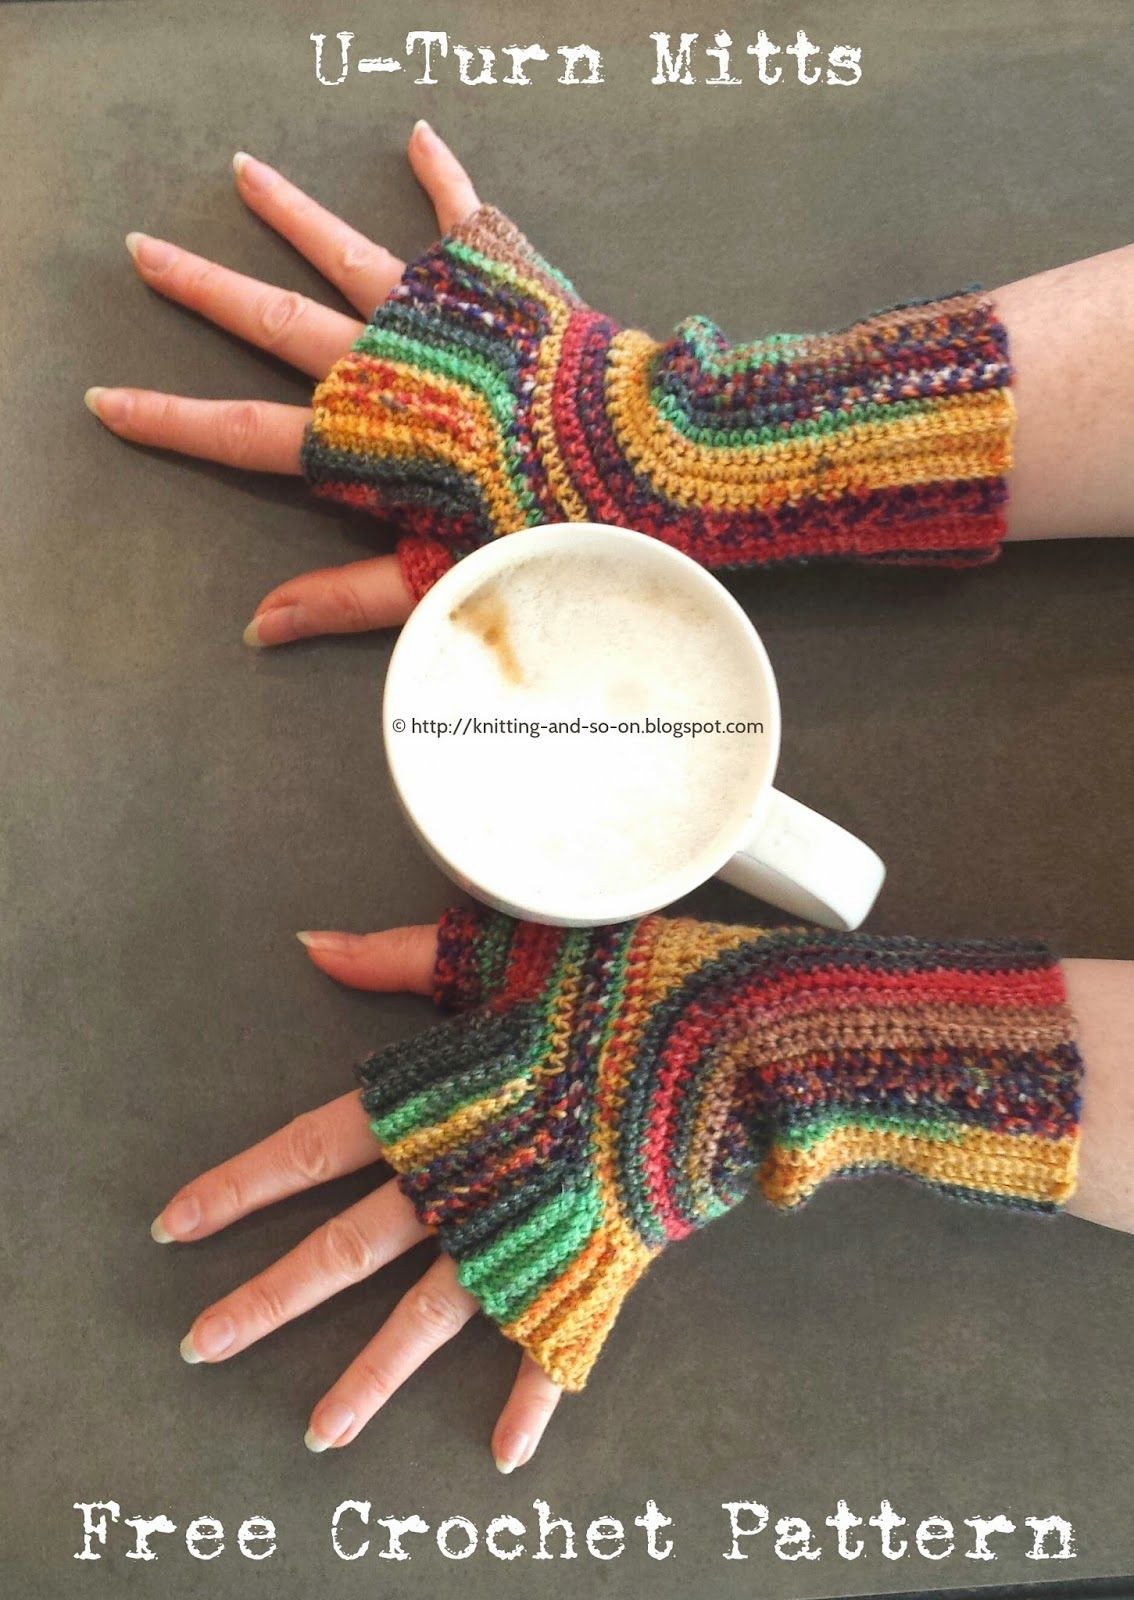 Free Crochet Pattern: U-Turn Mitts | GANCHILLO | Pinterest | Mitones ...